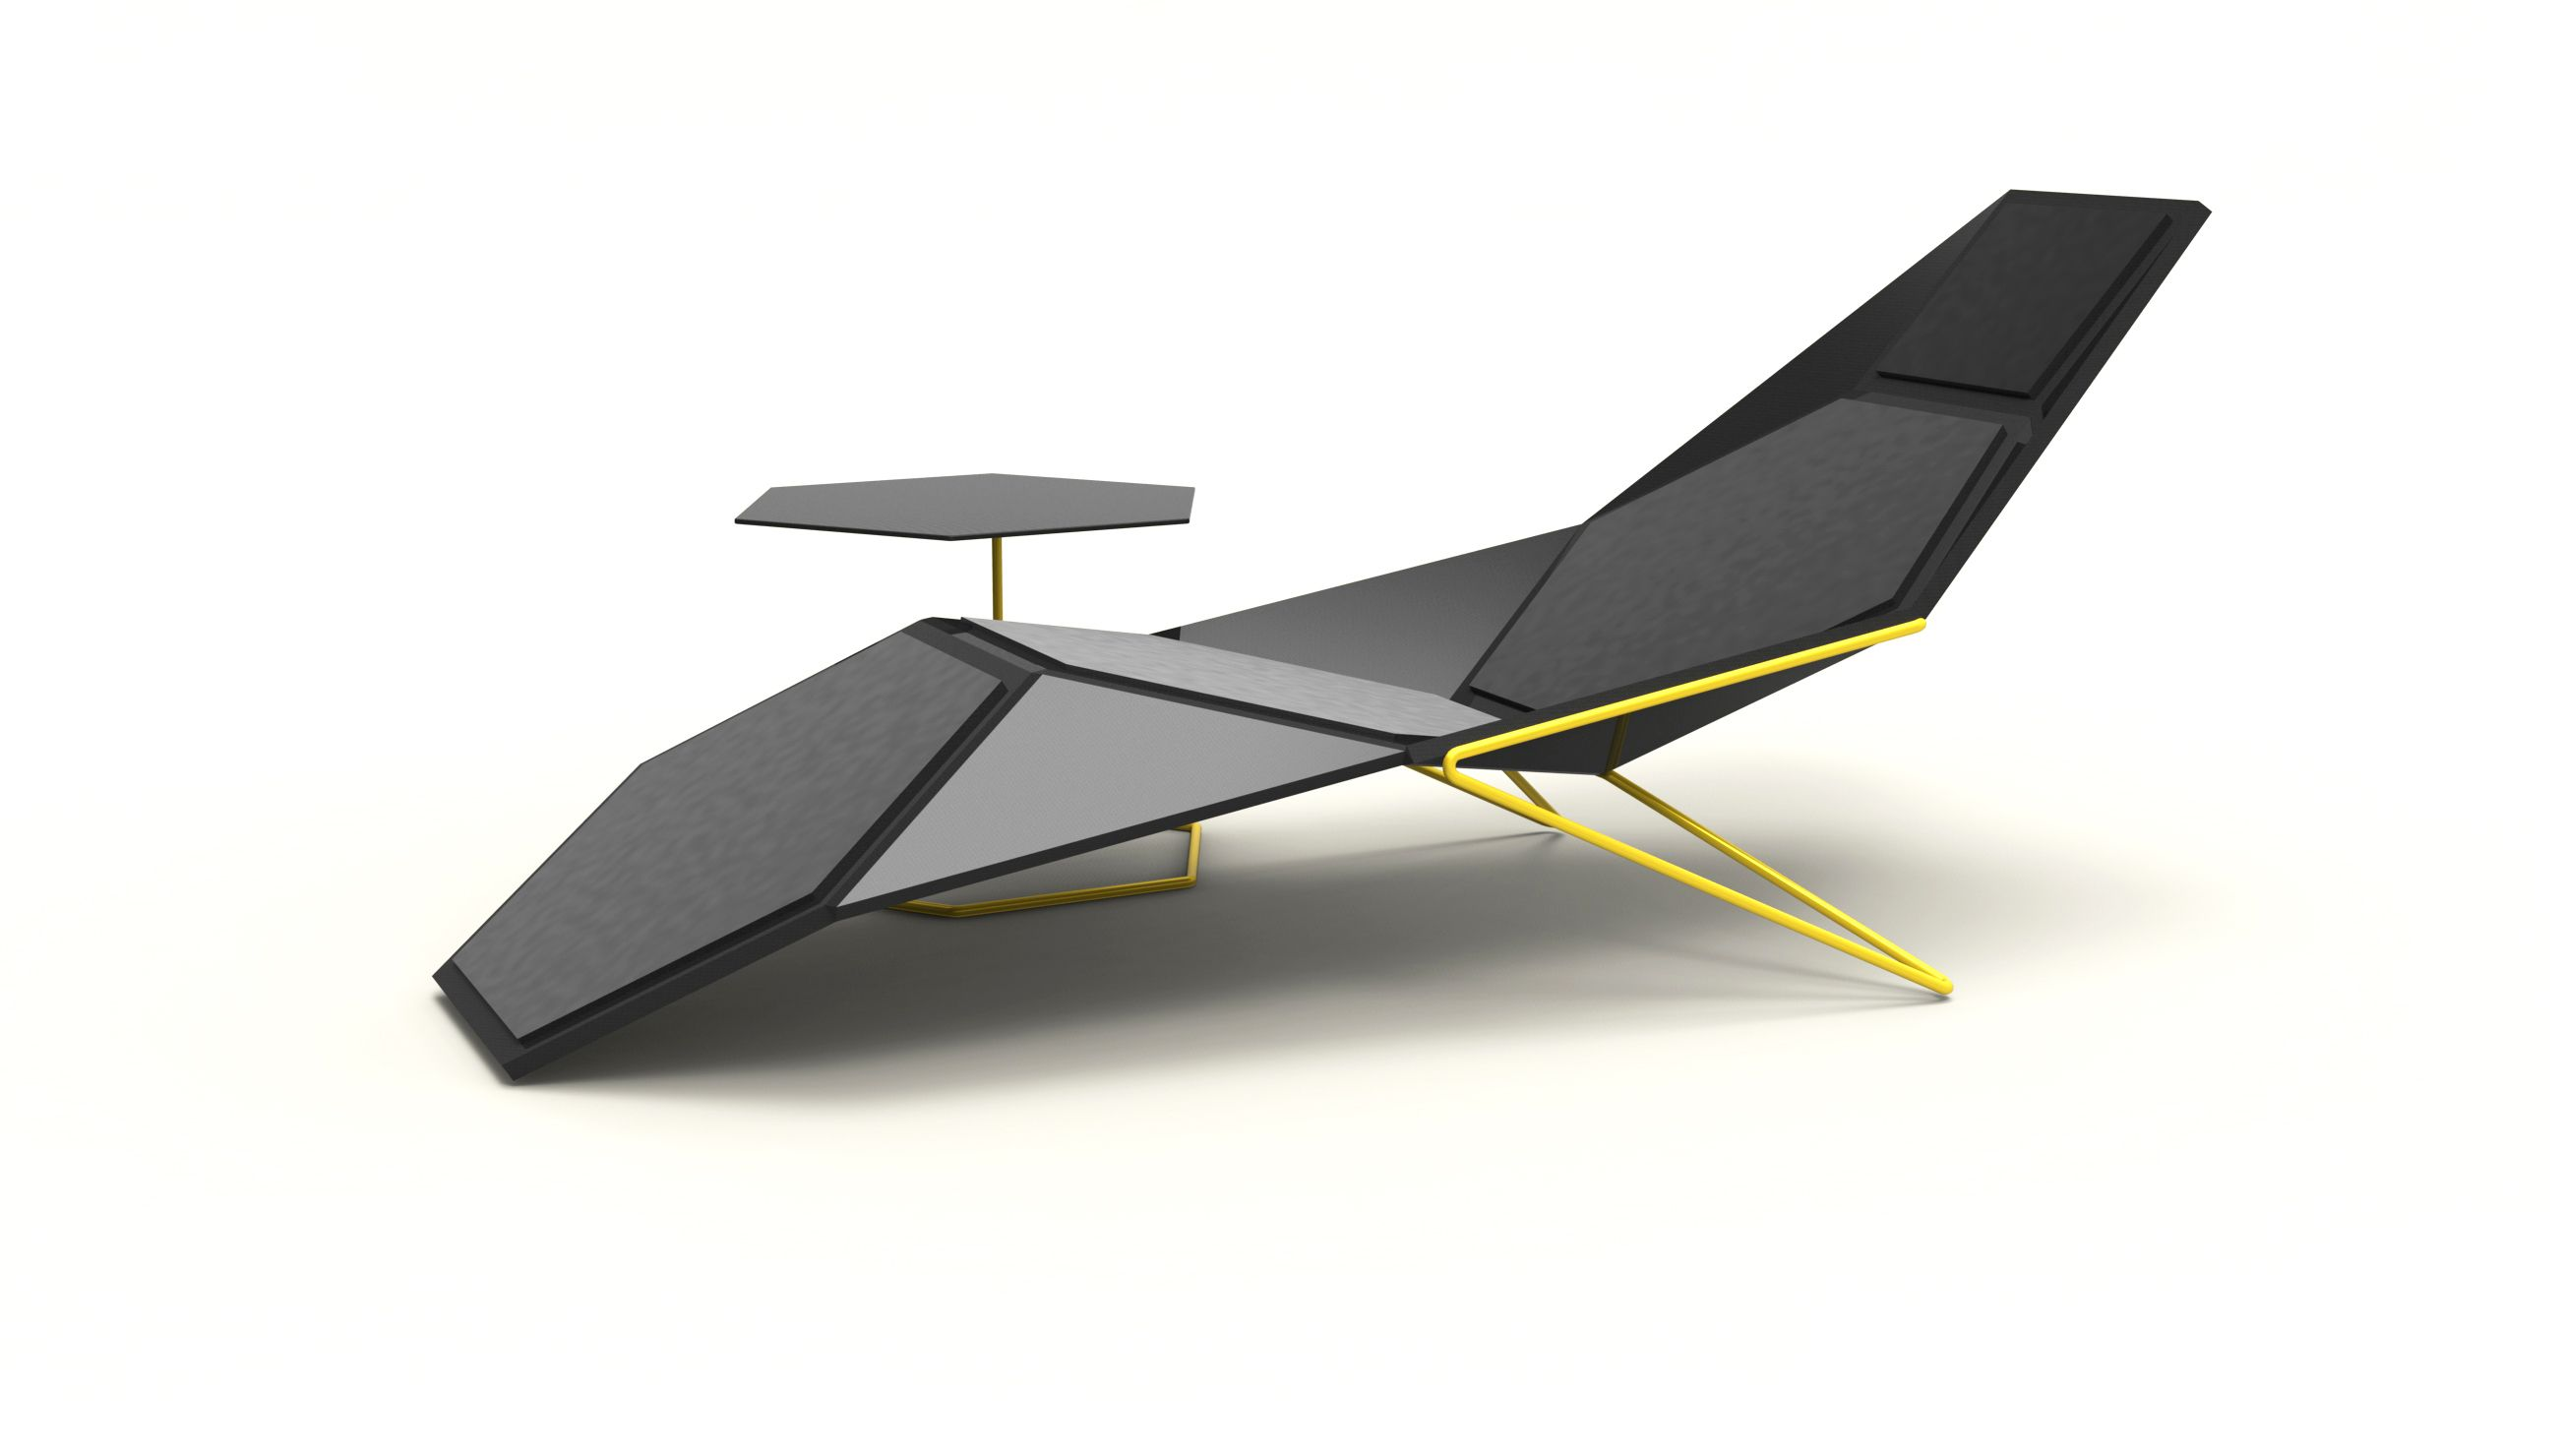 Best Futuristic Furniture Design Concept 4339 Affordable Sdn Bhd